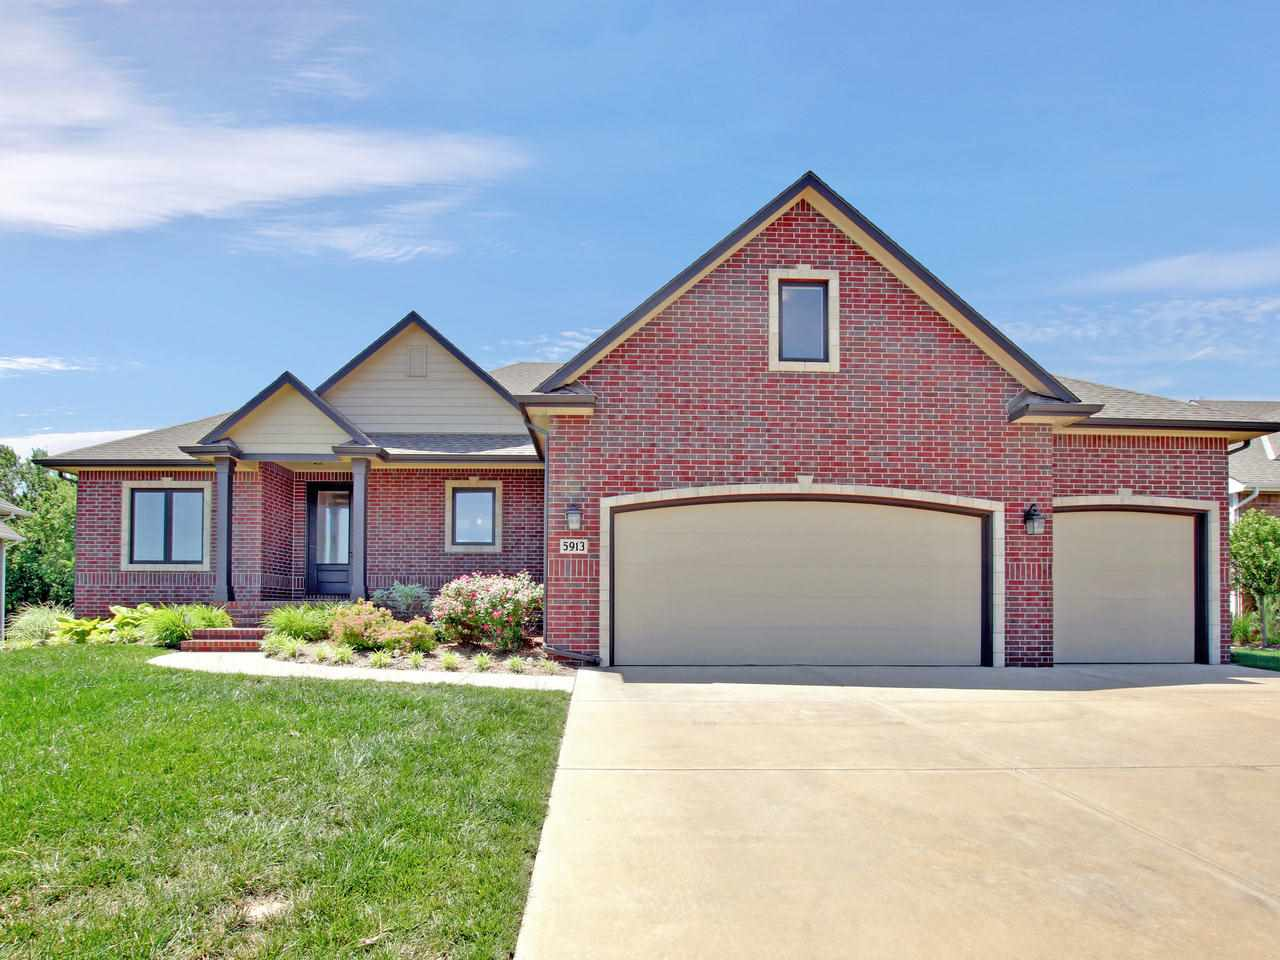 This beautiful home in the sought-after Iron Gate subdivision, offers 3 bedrooms on the main level a